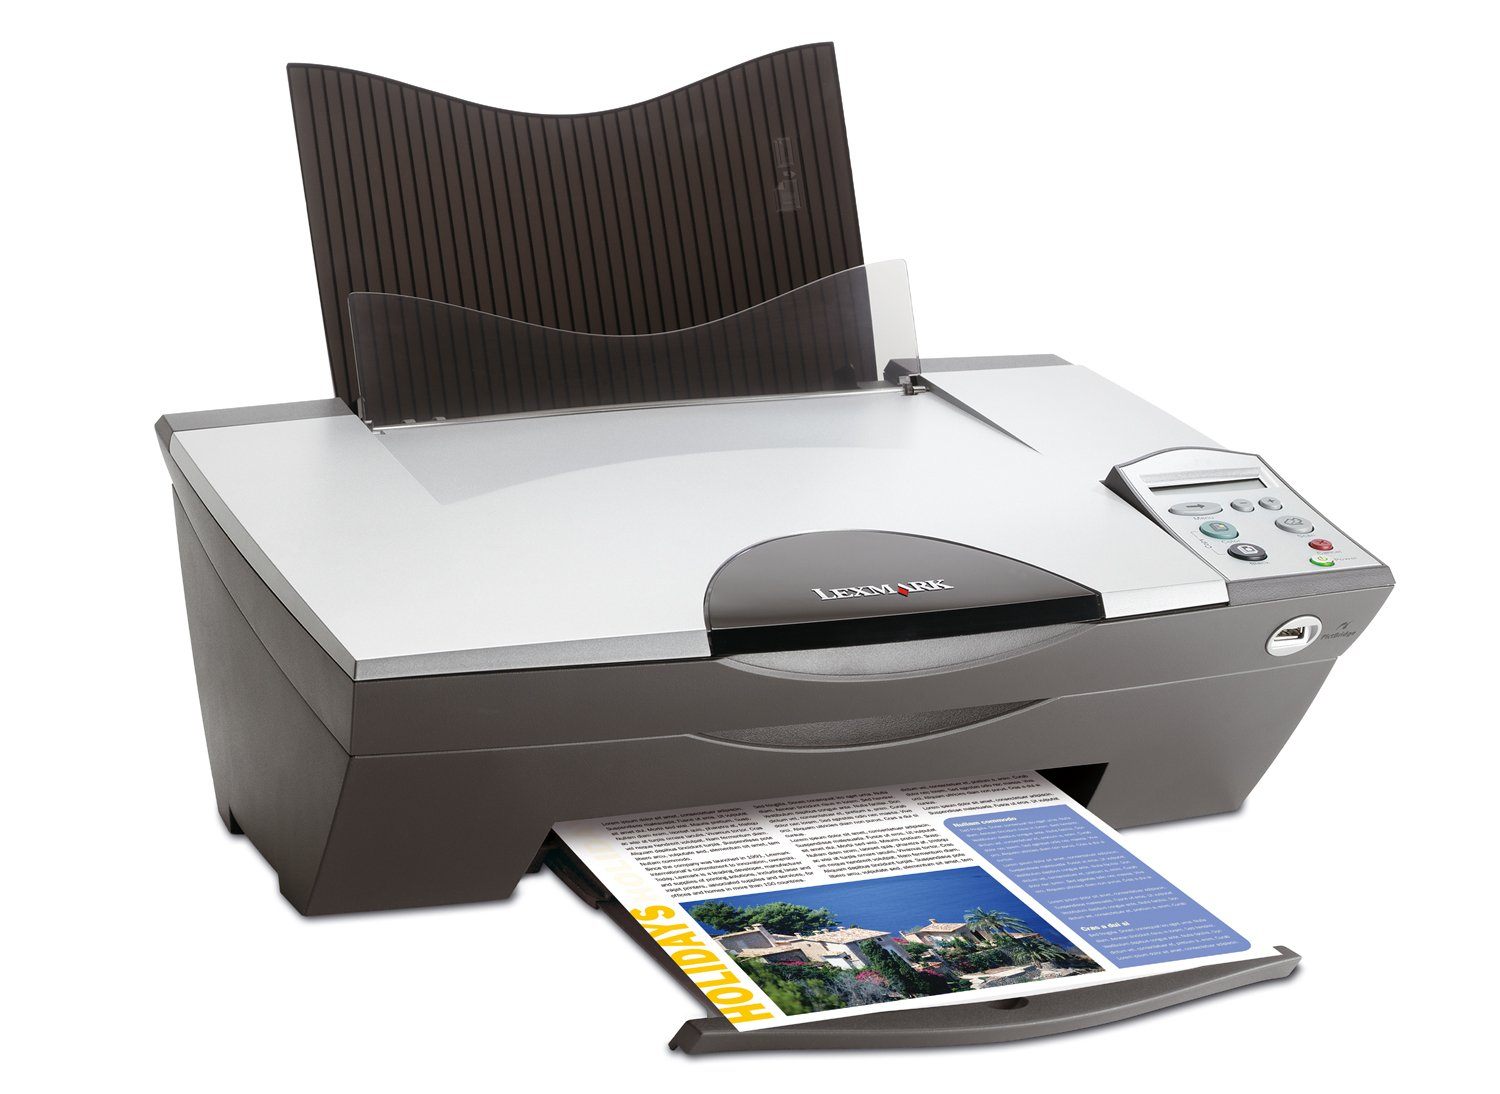 LEXMARK PRINTER X3350 WINDOWS 8.1 DRIVERS DOWNLOAD